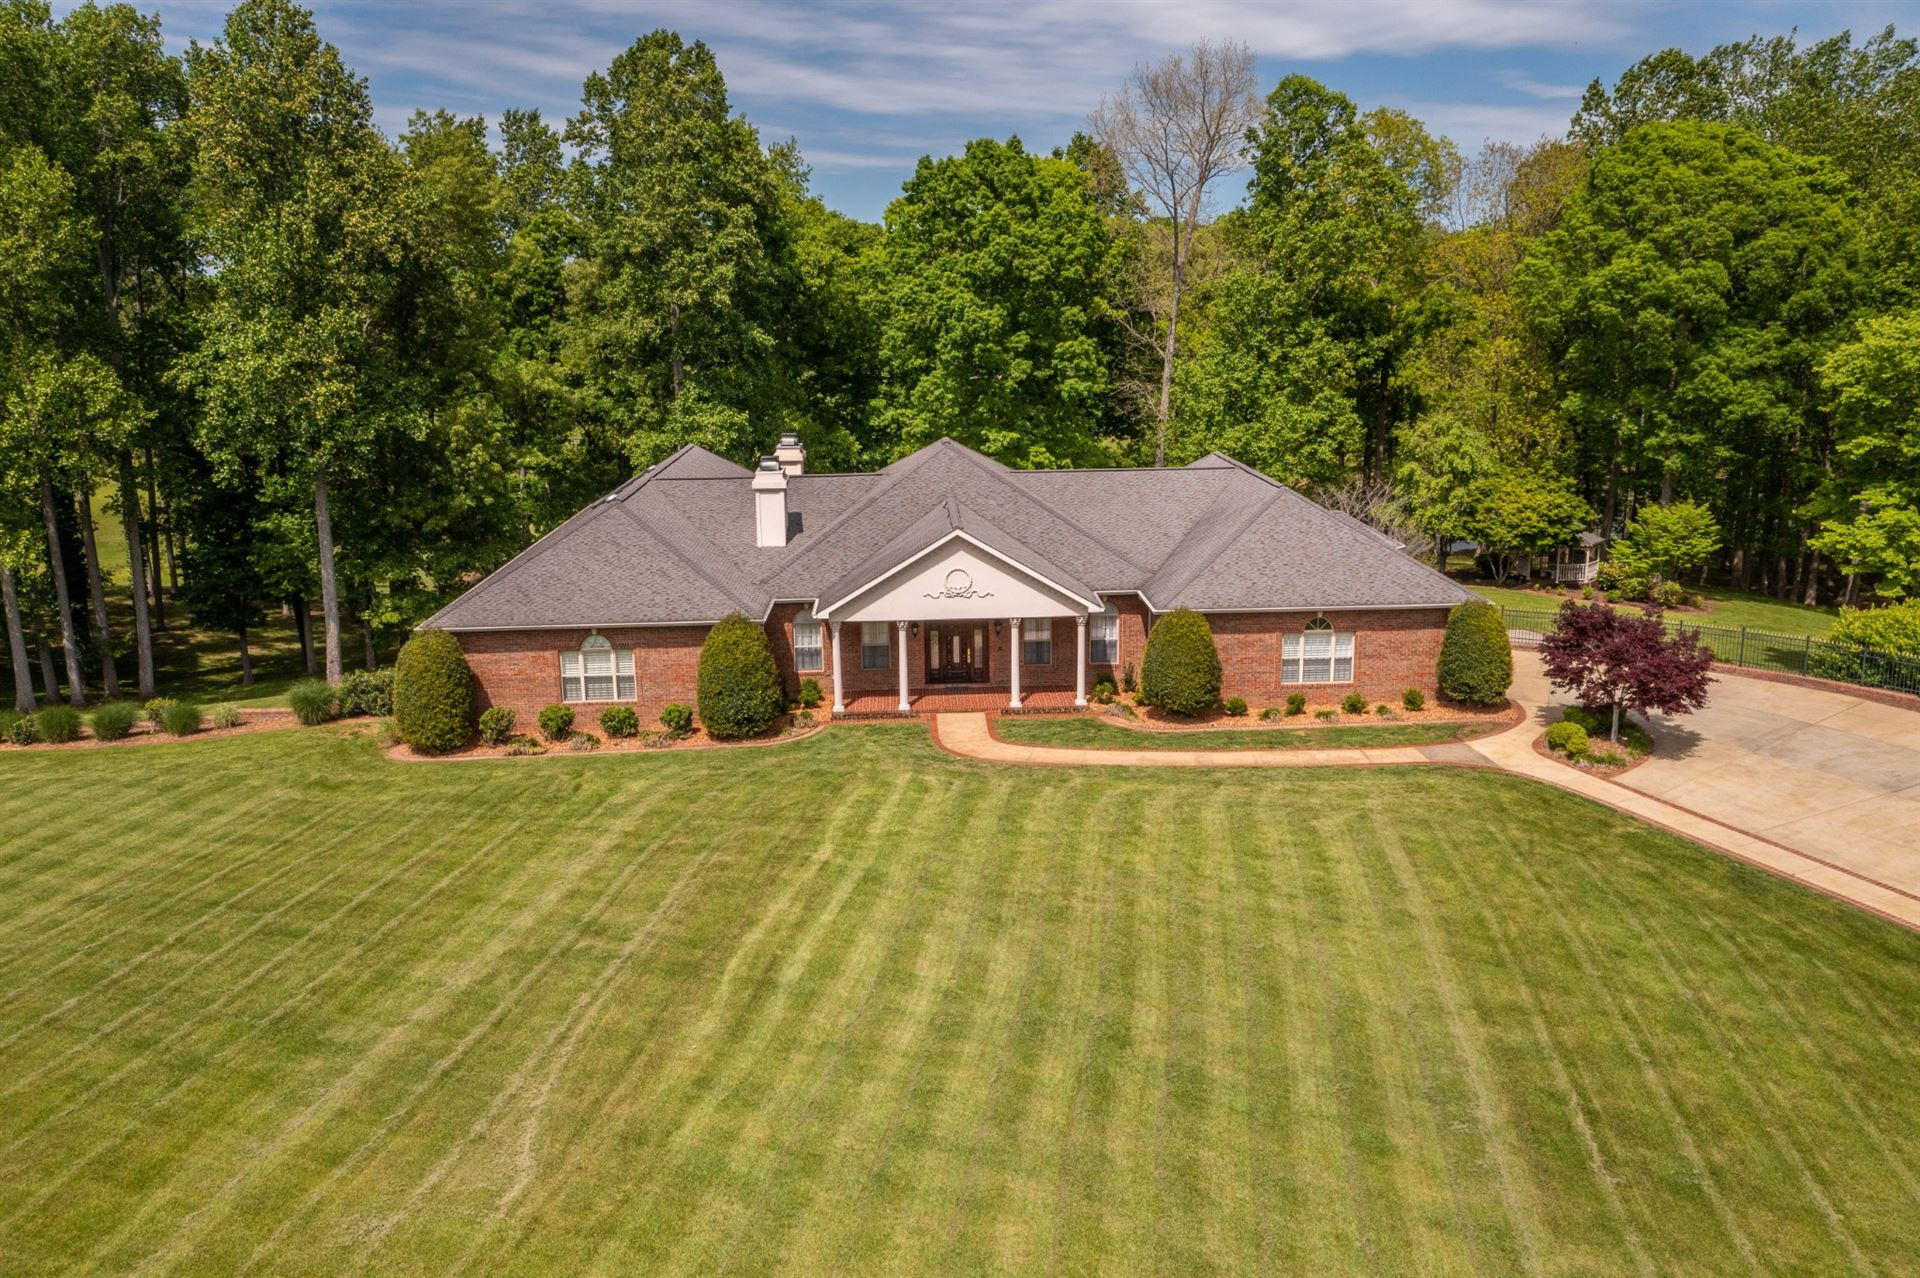 1211 Bill Smith Rd, Cookeville, TN 38501 - MLS#: 2261102